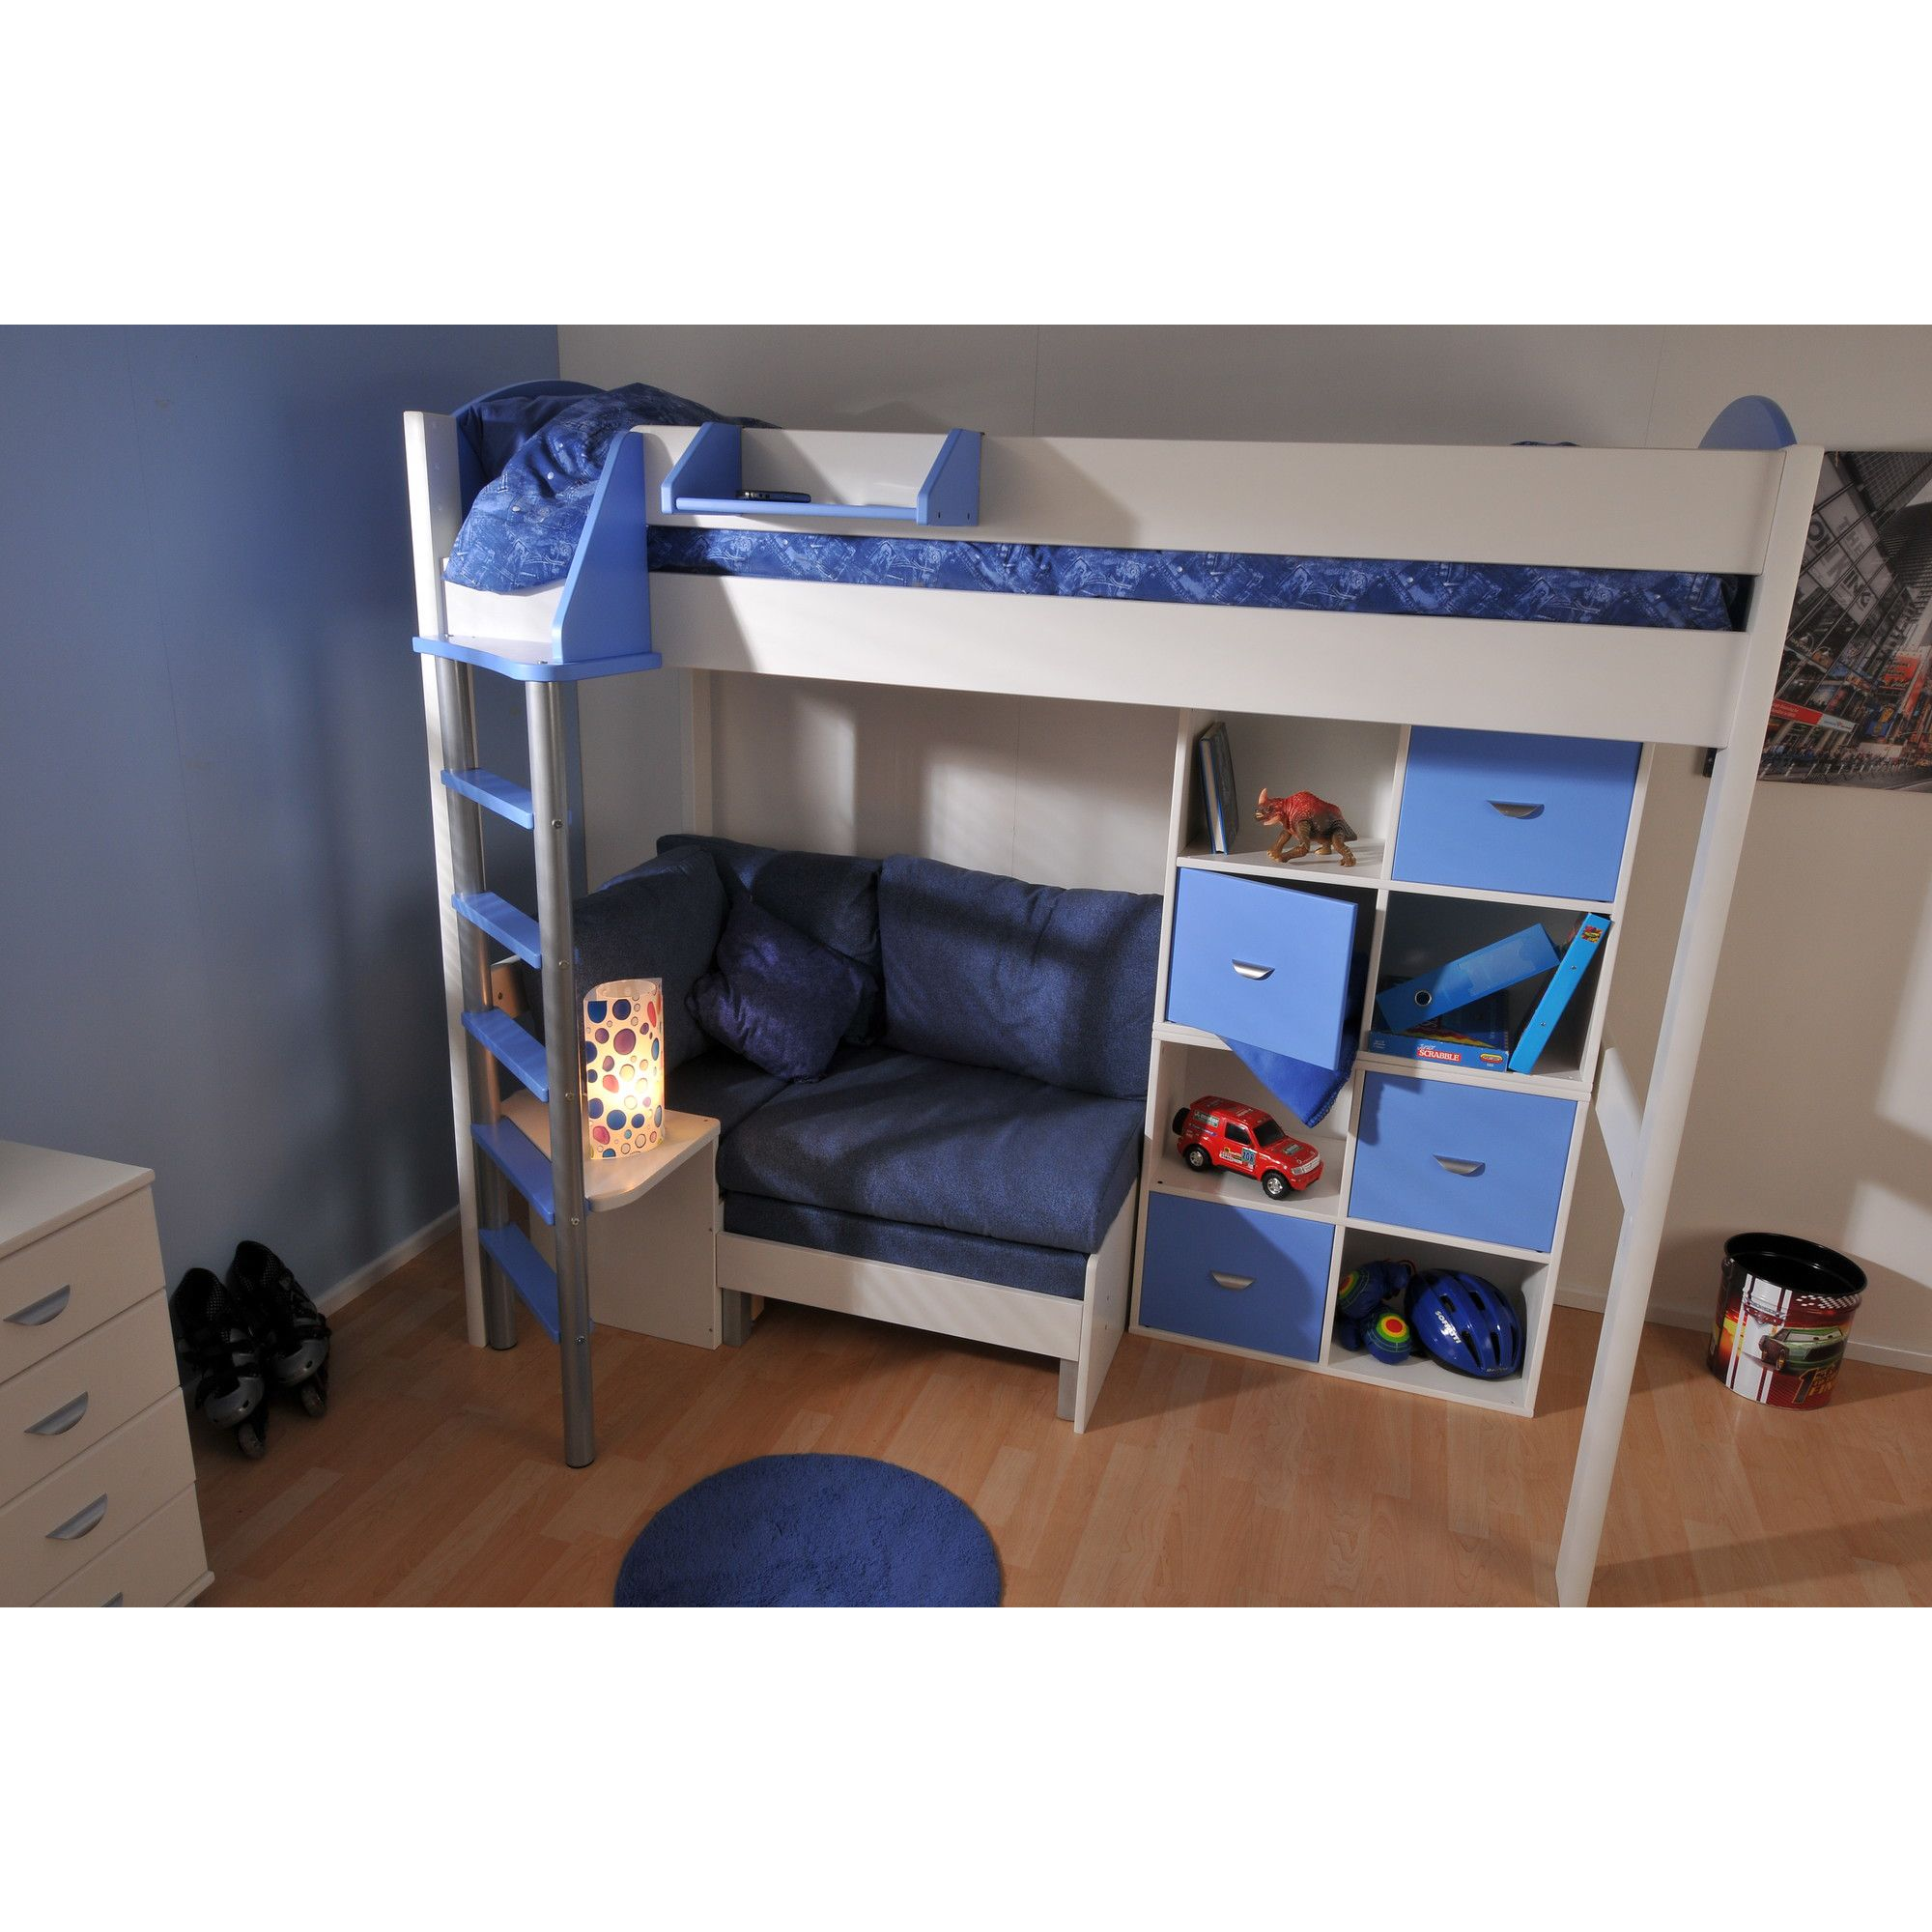 Stompa Casa High Sleeper Sofa Bed with 8 Cube Unit - Antique - Blue - Blue Denim at Tesco Direct